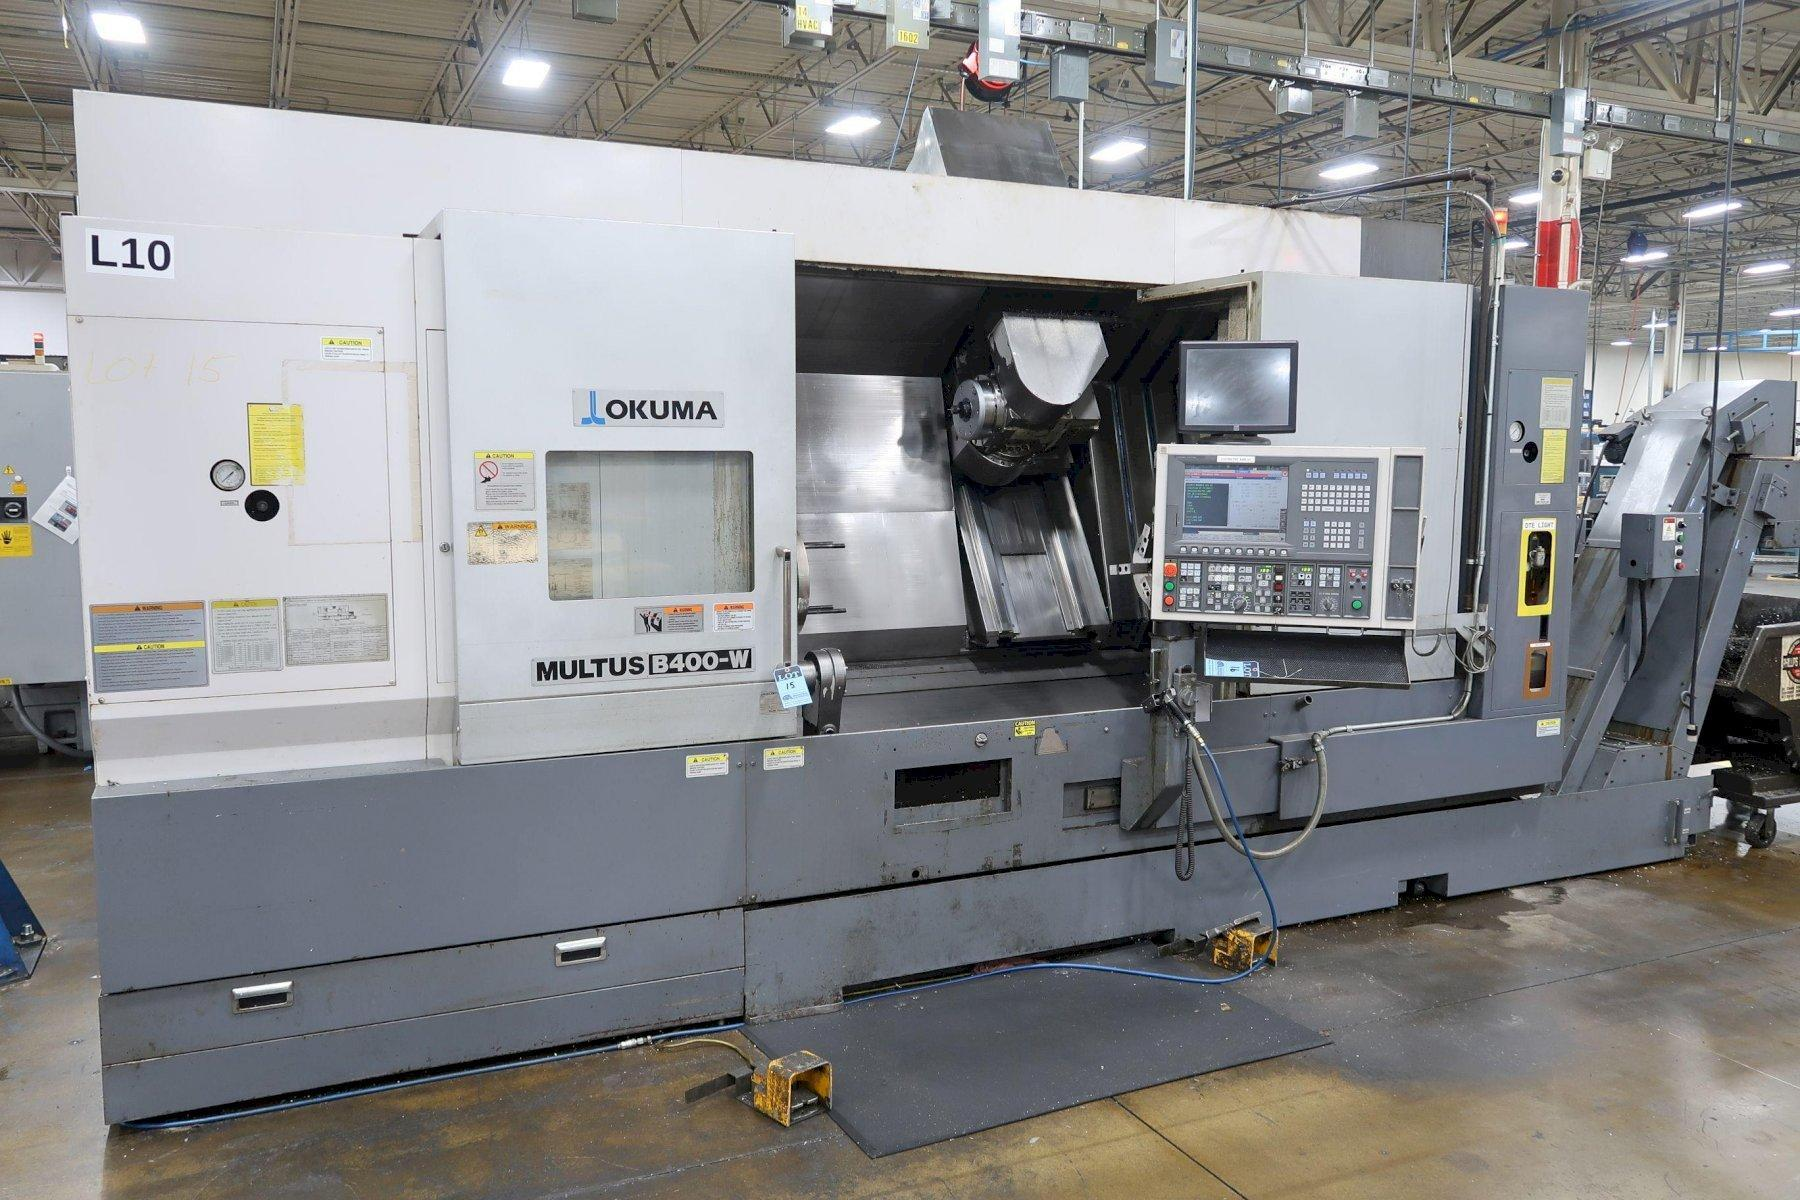 Okuma Multus B400W CNC Turning/Milling Machine with (Y) Axis